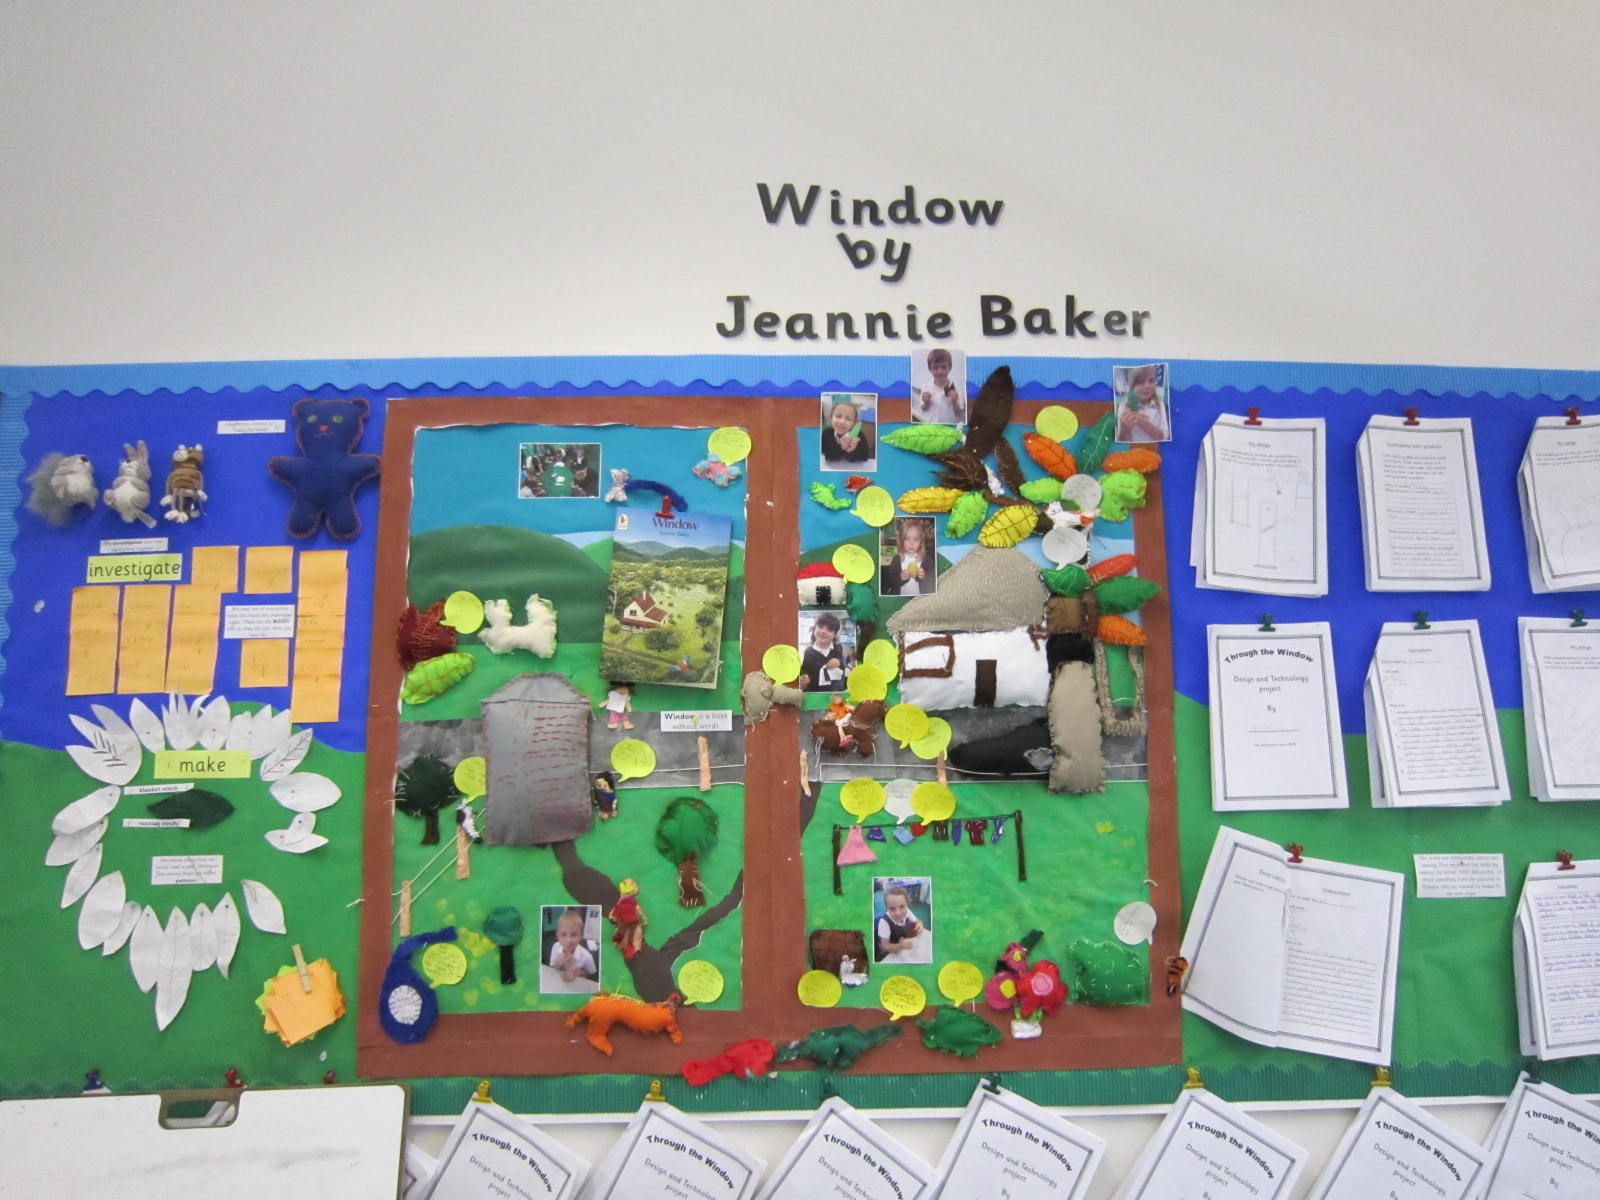 Thurton Primary School Display Based On Window By Jeannie